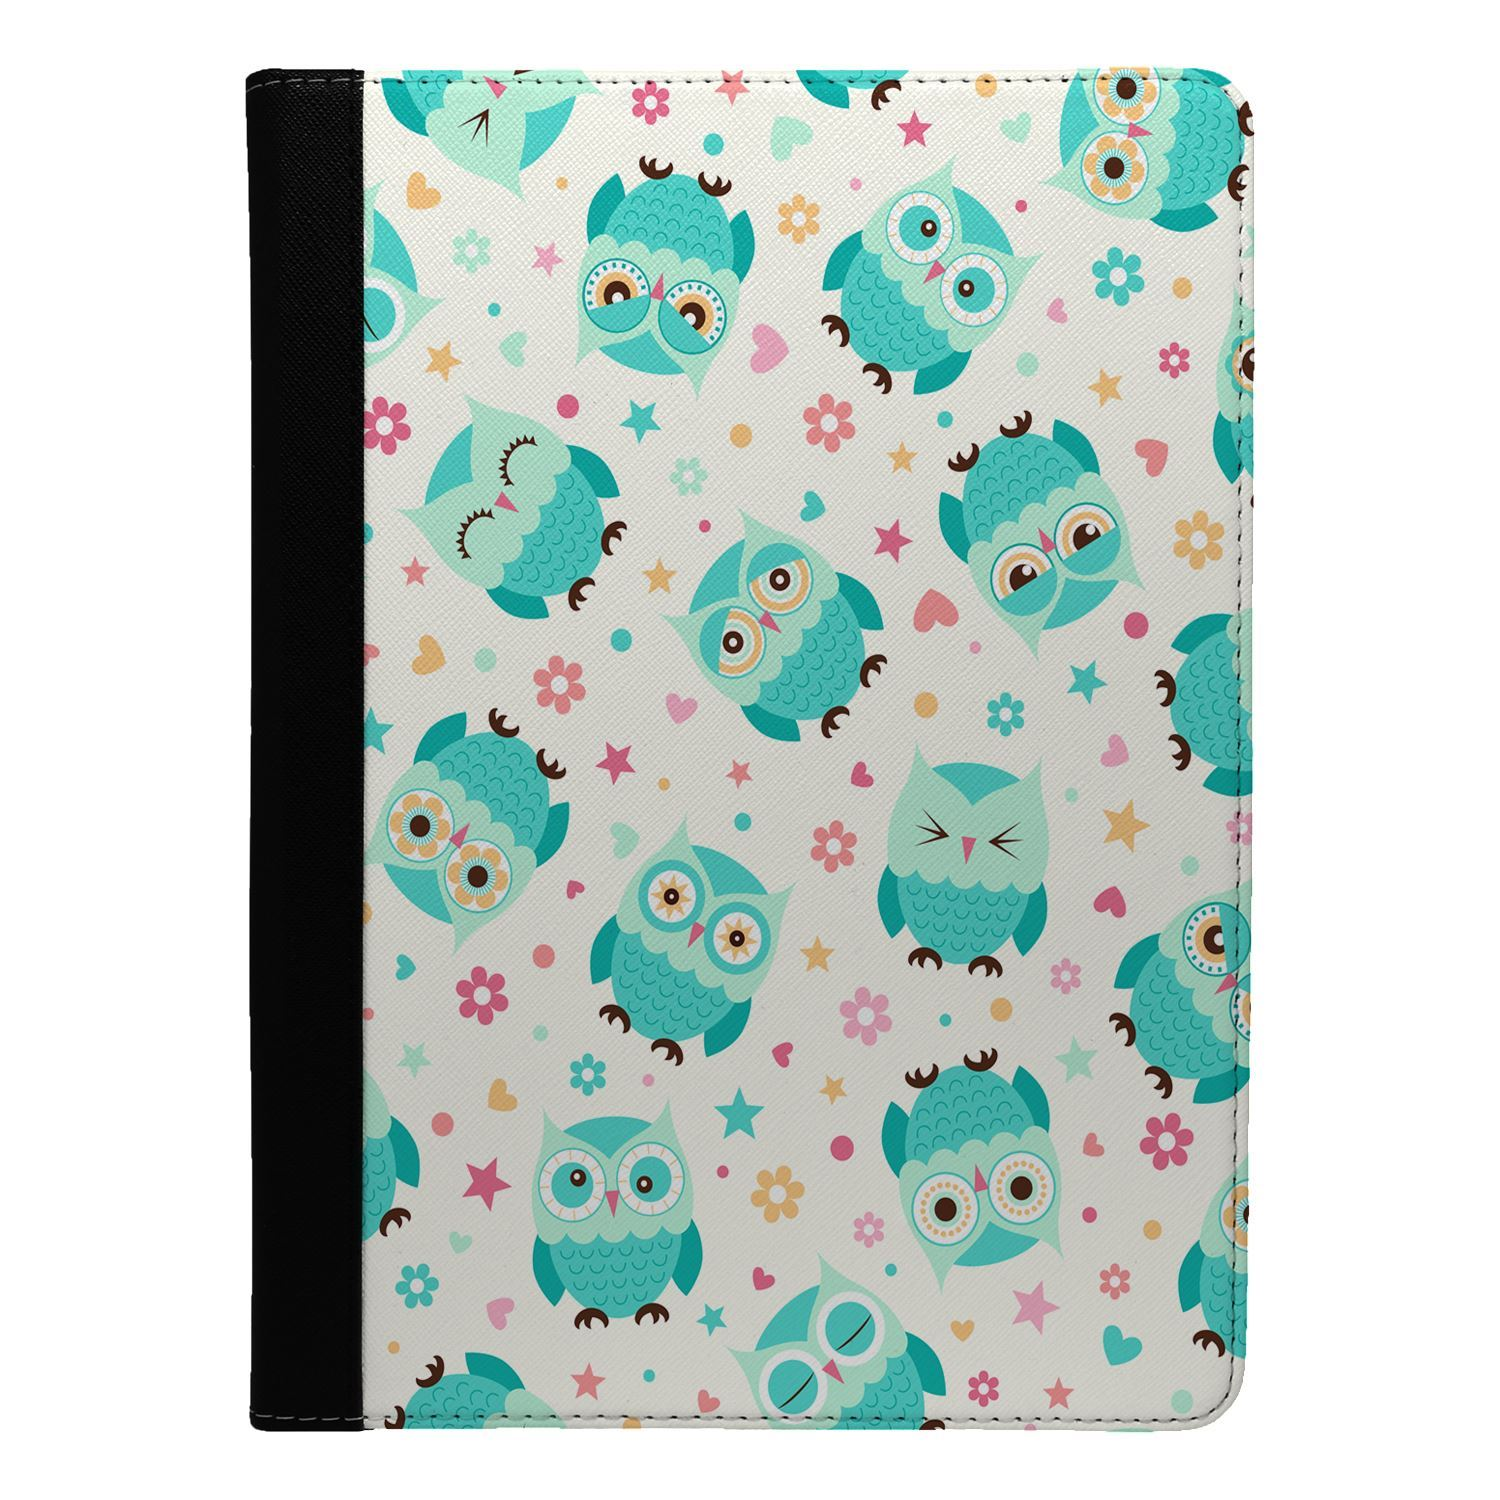 Cute-Owl-Pattern-Flip-Case-Cover-For-Apple-iPad-S8836